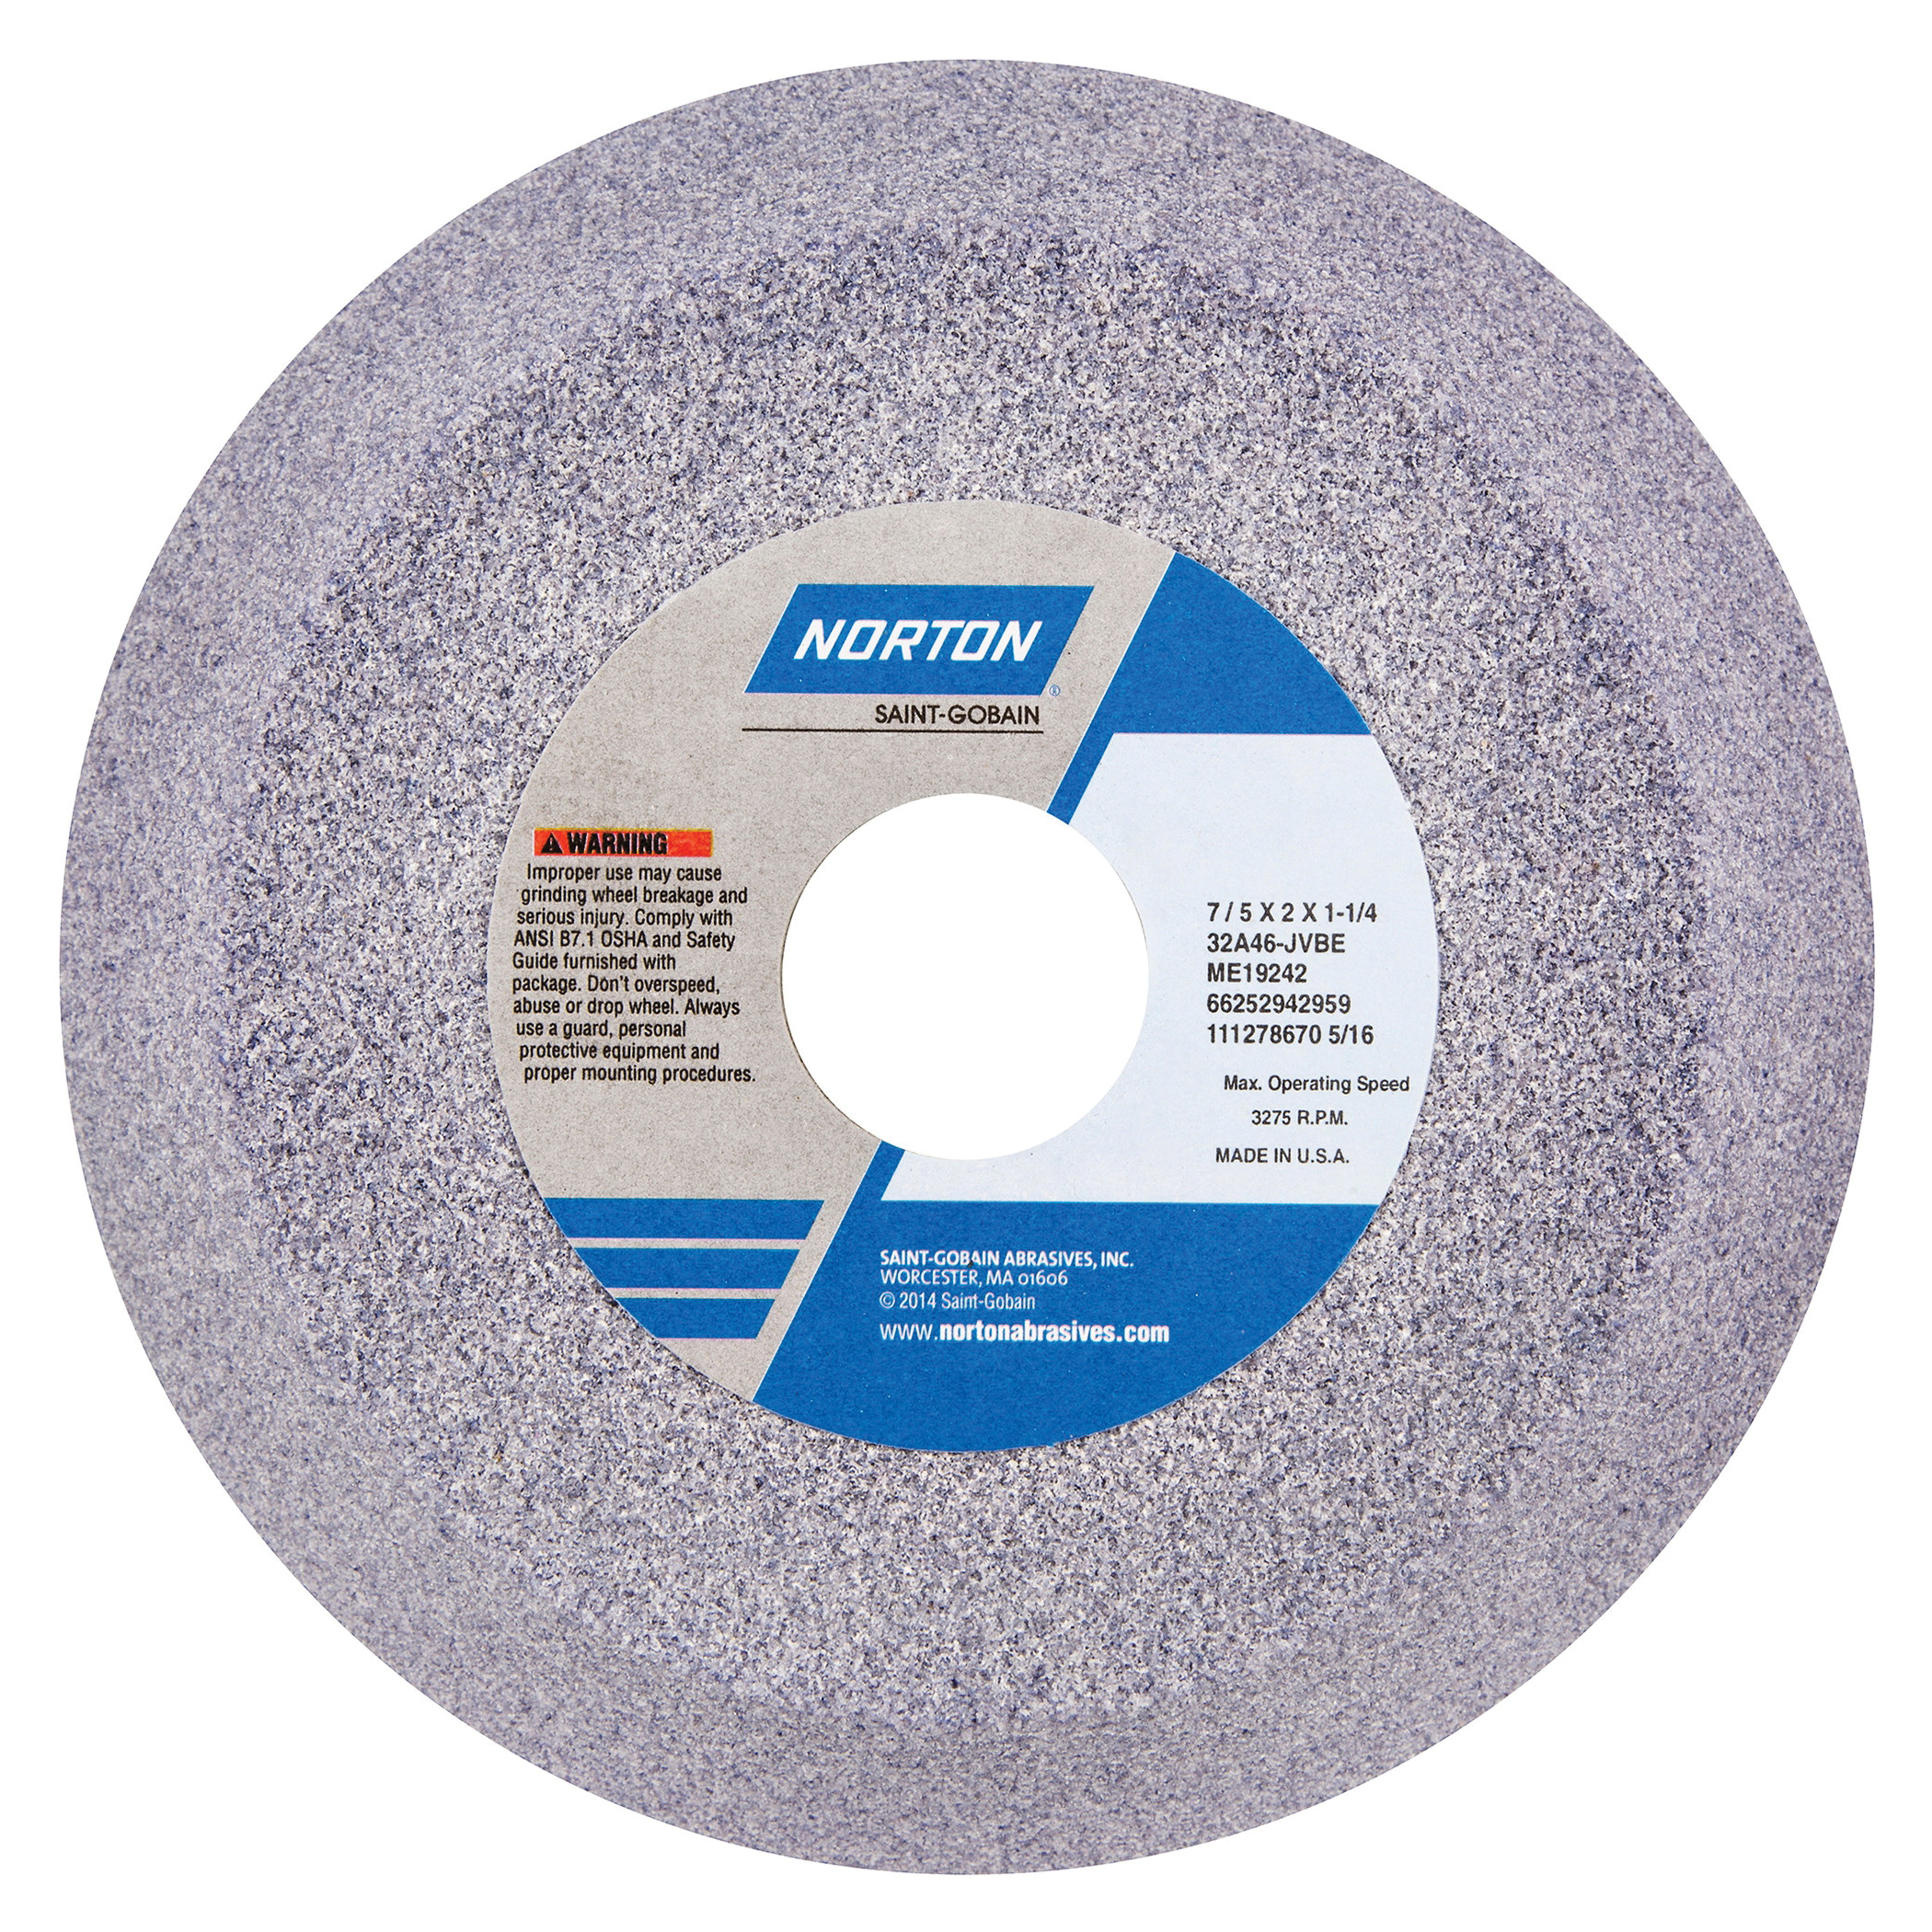 Norton® 66252942959 32A Toolroom Wheel, 7 in Dia x 2 in THK, 1-1/4 in Center Hole, 46 Grit, Aluminum Oxide Abrasive